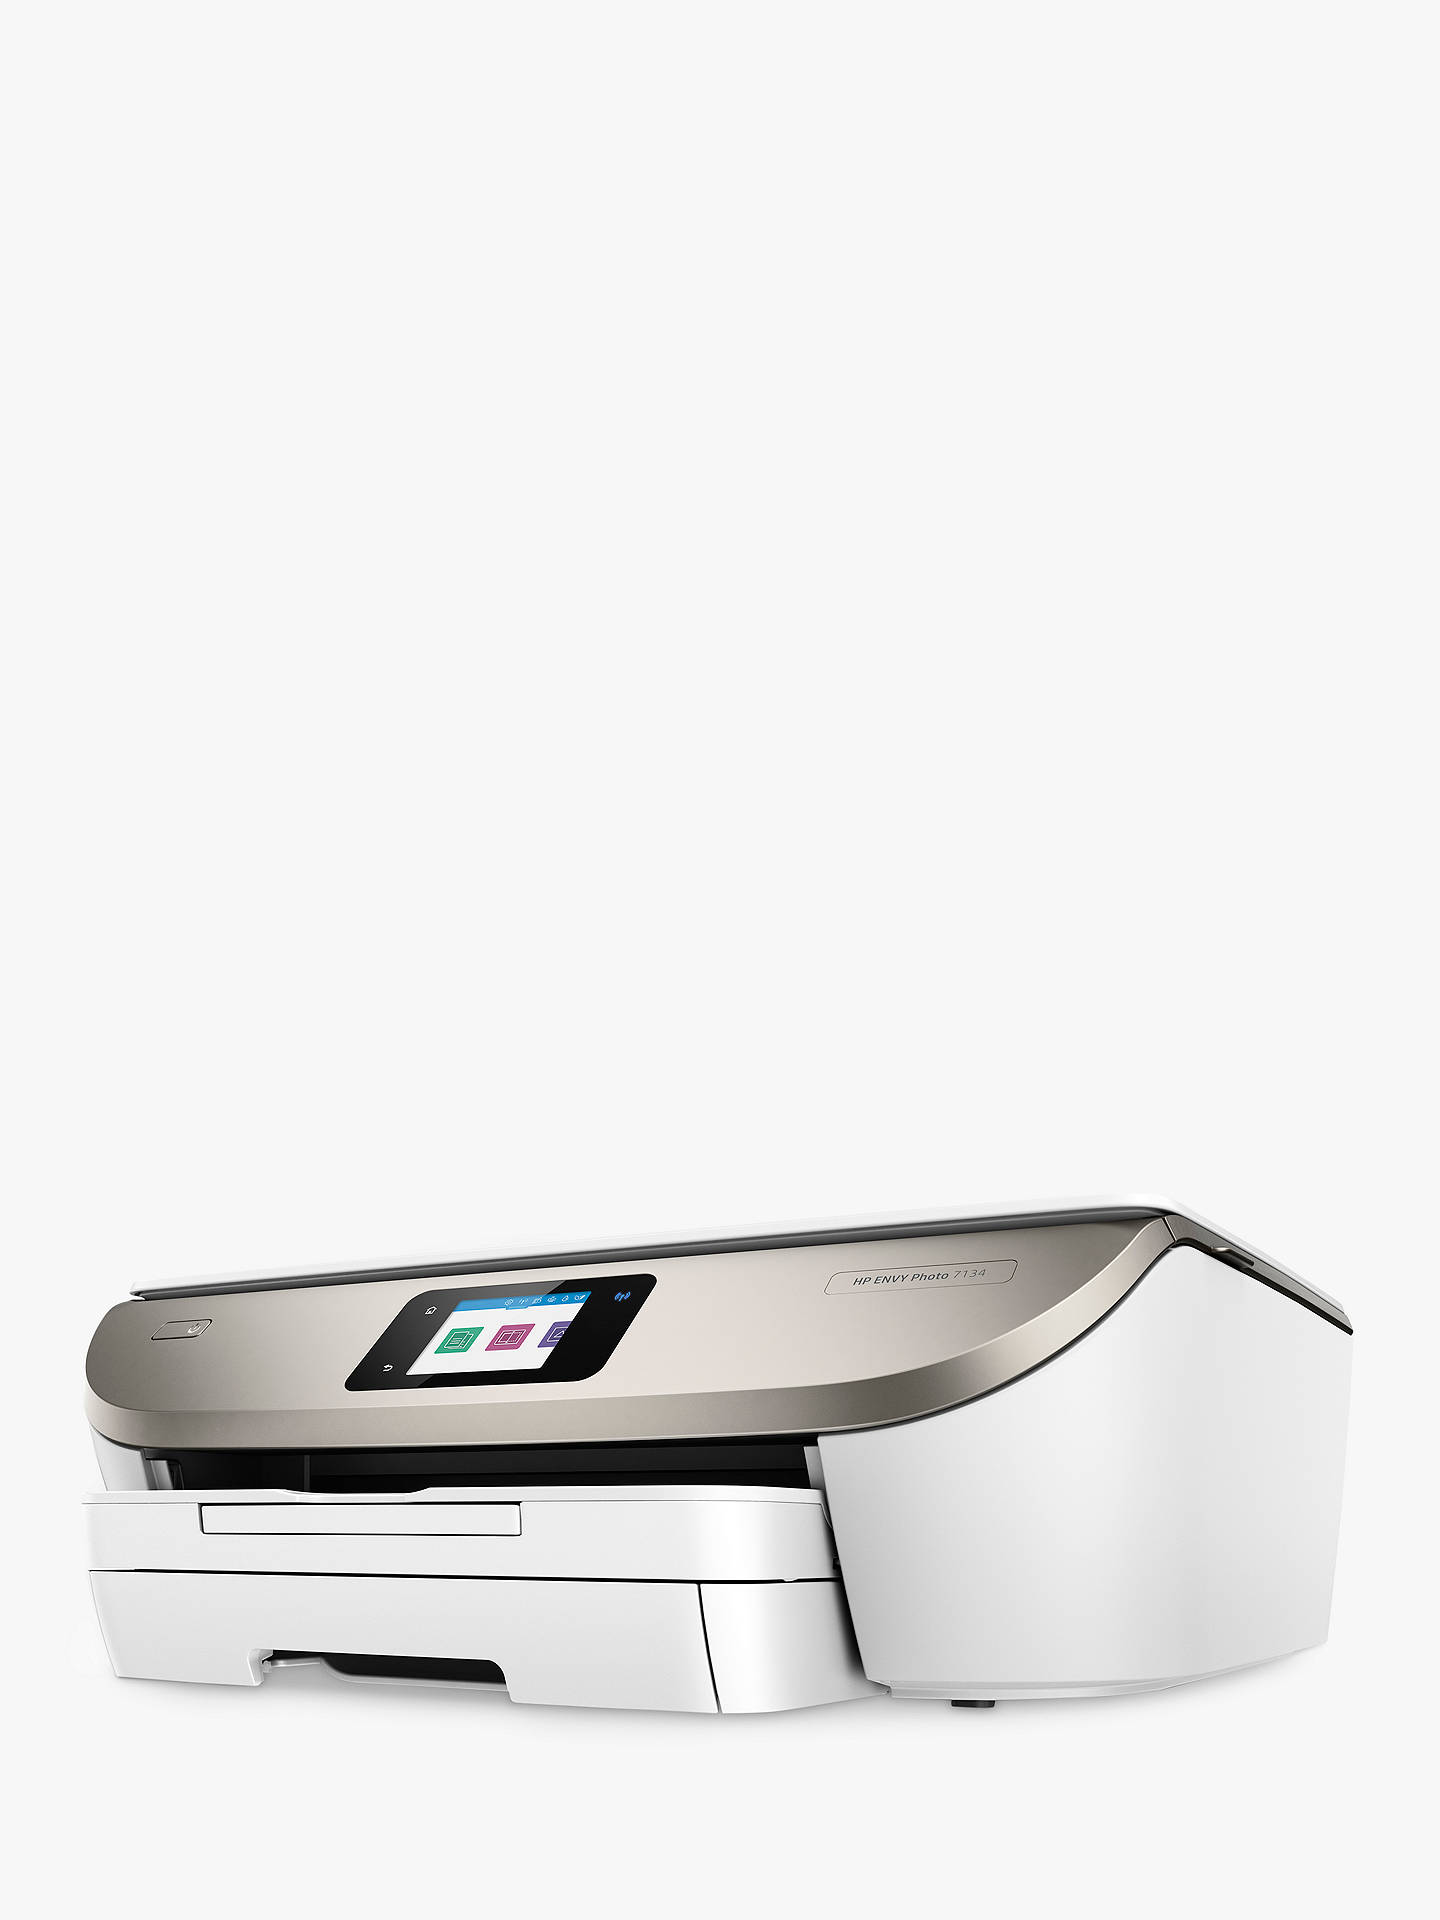 HP ENVY Photo 7134 All-in-One Wireless Printer, HP Instant Ink Compatible  with 5 Months Trial, White